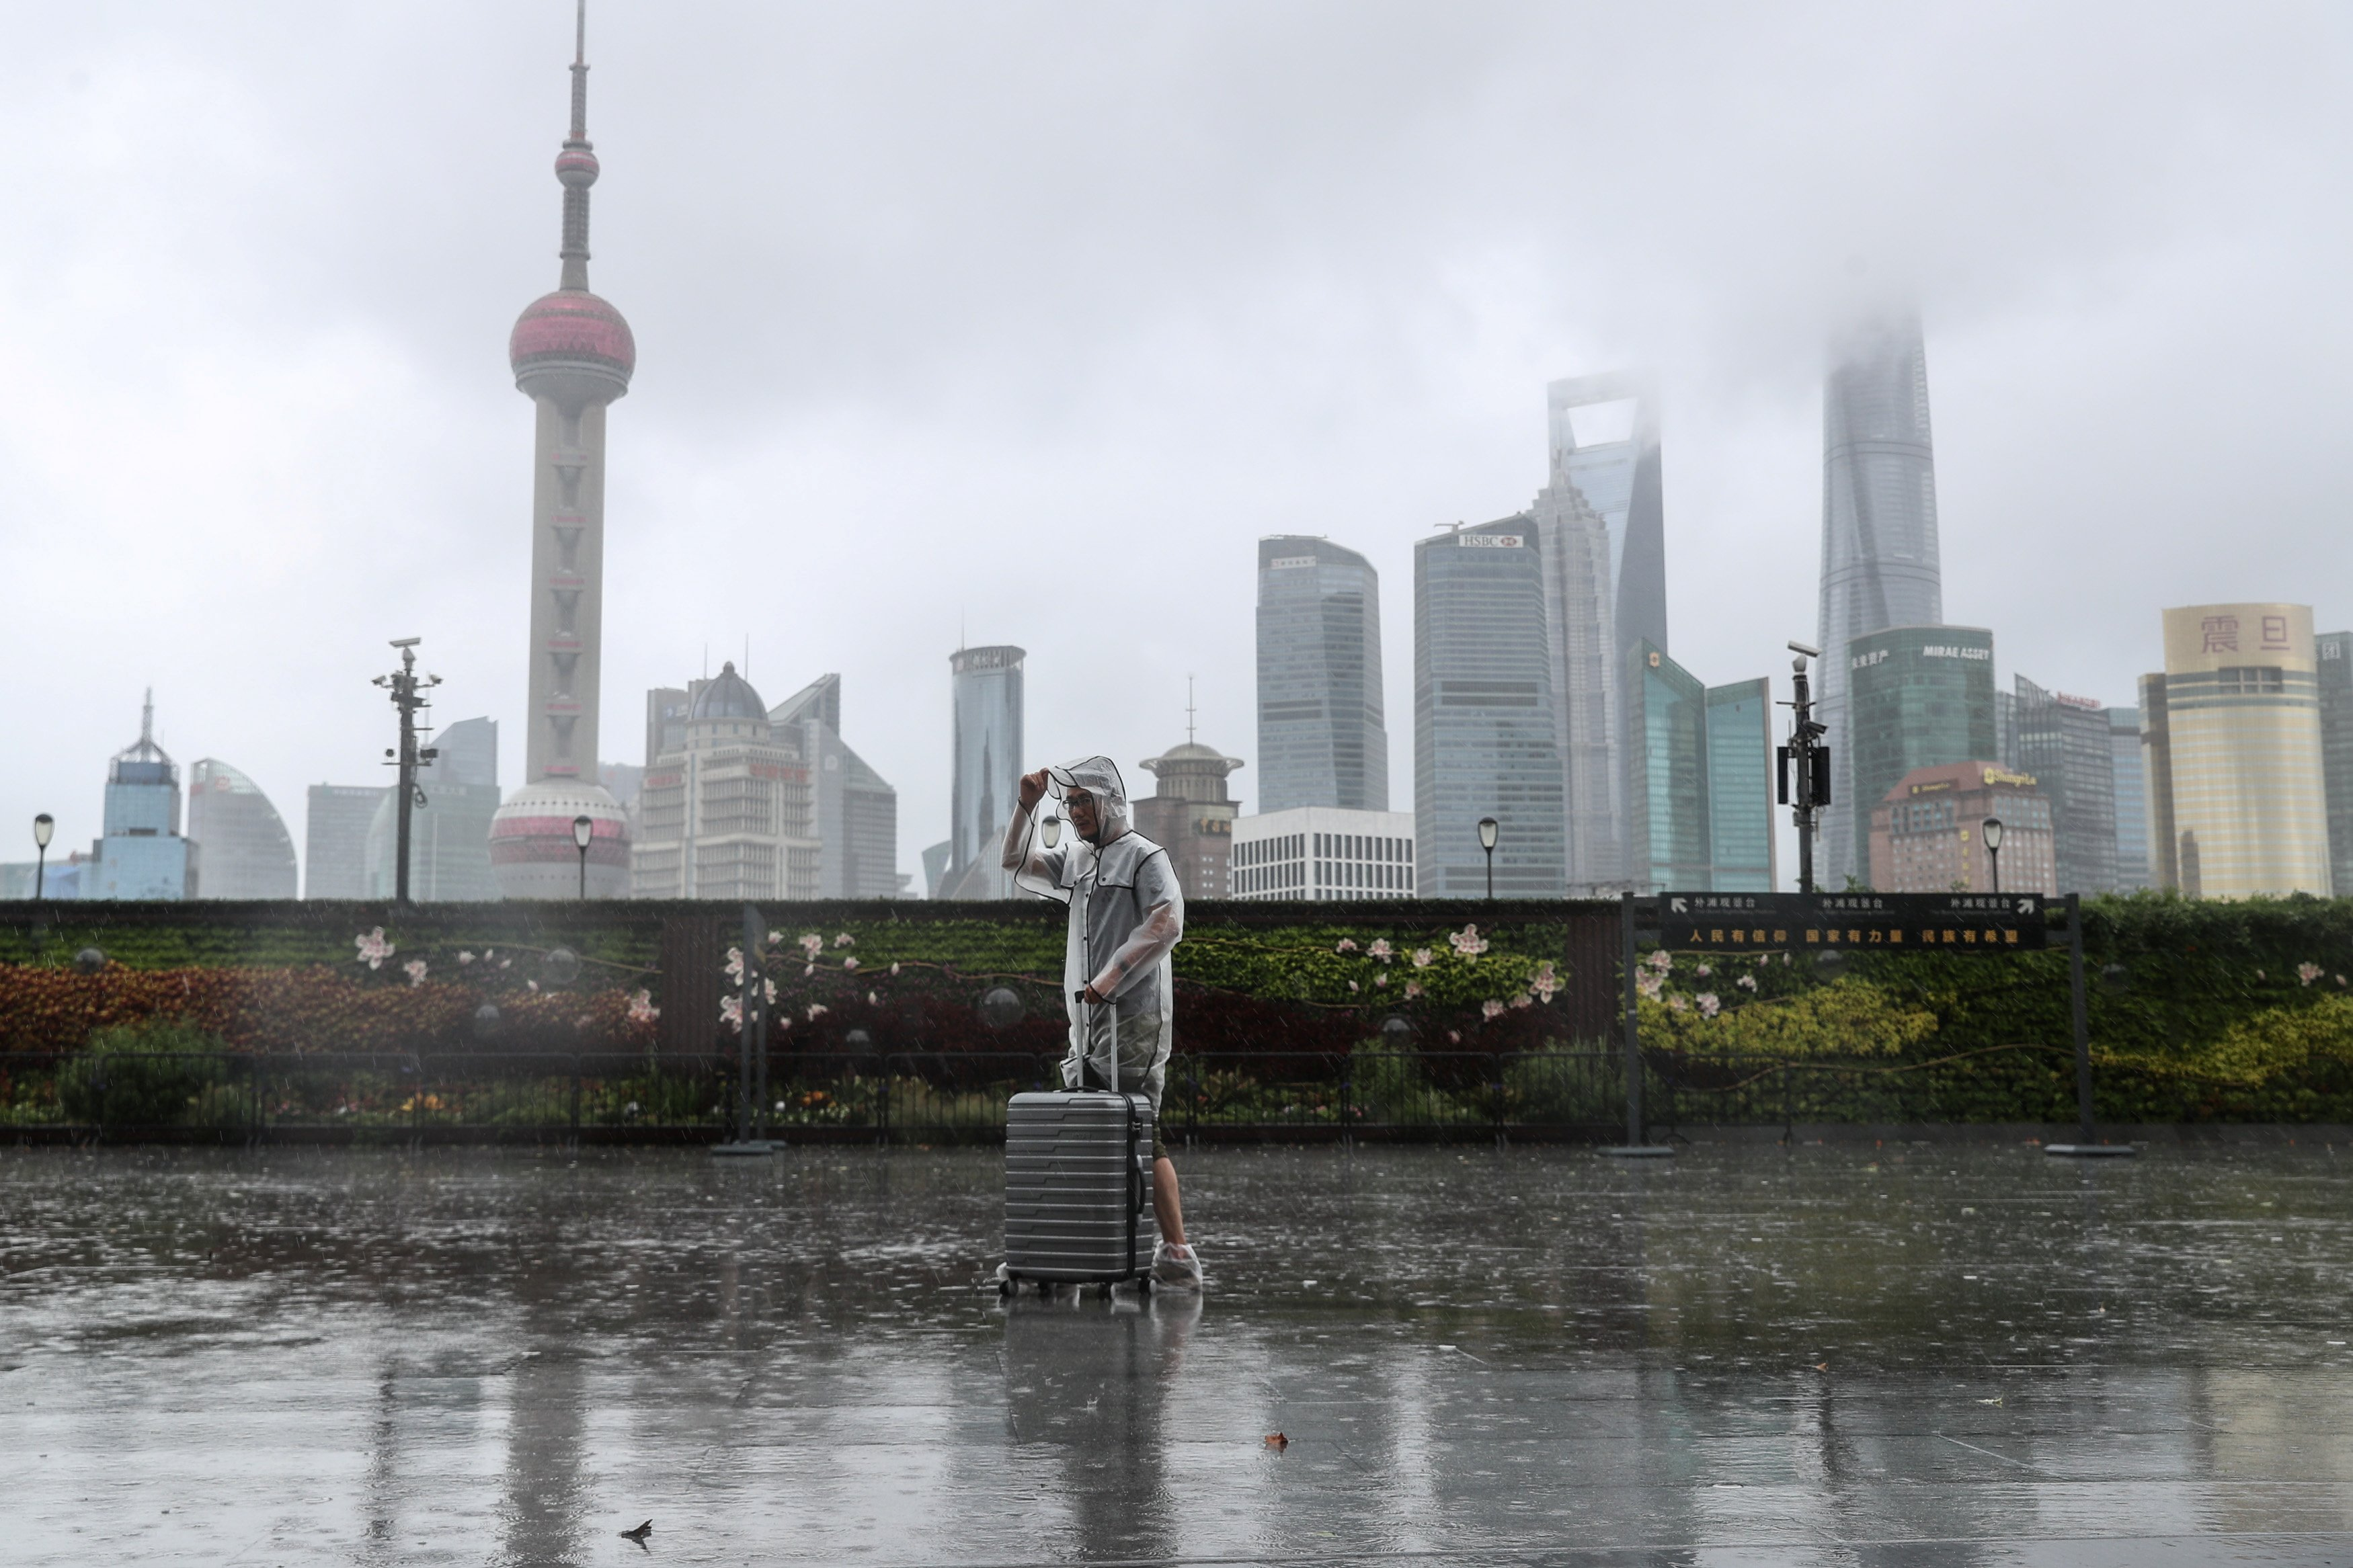 Tens of thousands evacuated as typhoon In-fa makes landfall in eastern China